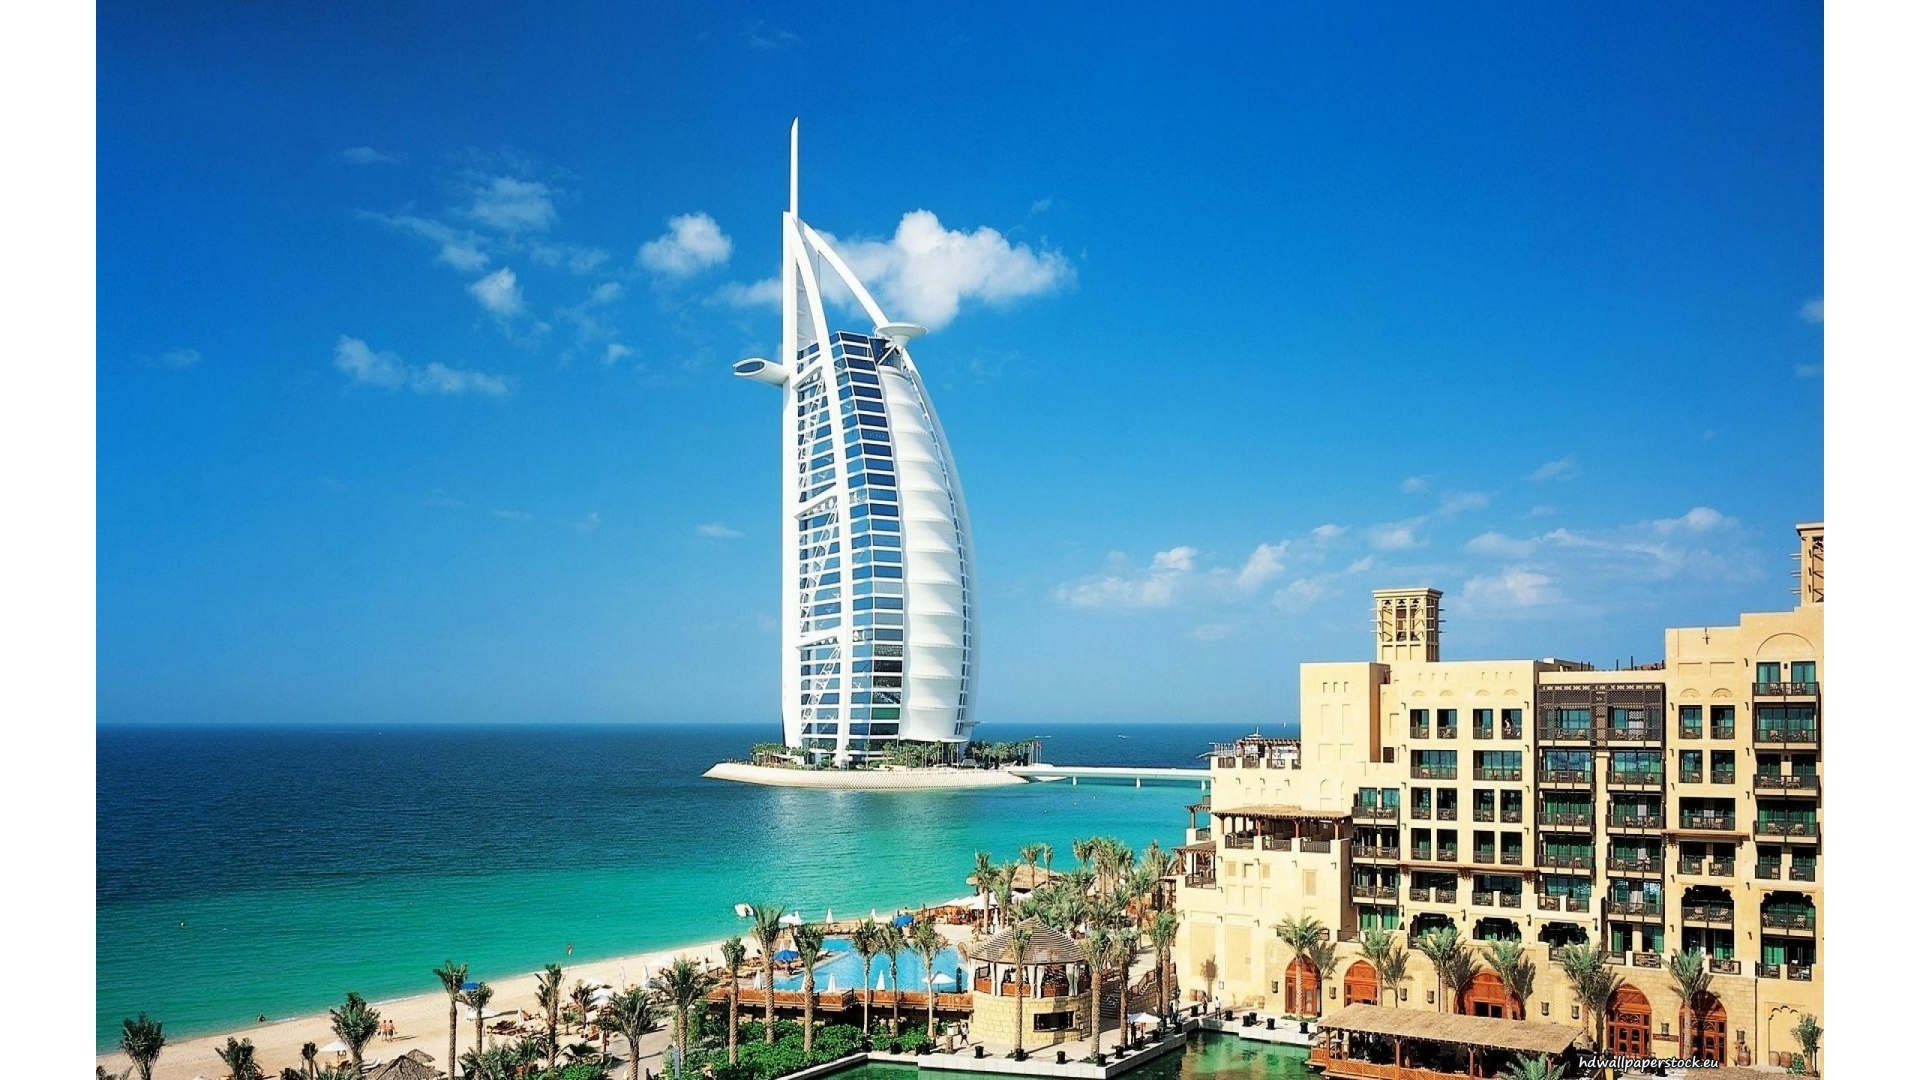 Hotel Burj Al Arab Of Burj Al Arab Wallpapers Pictures Images